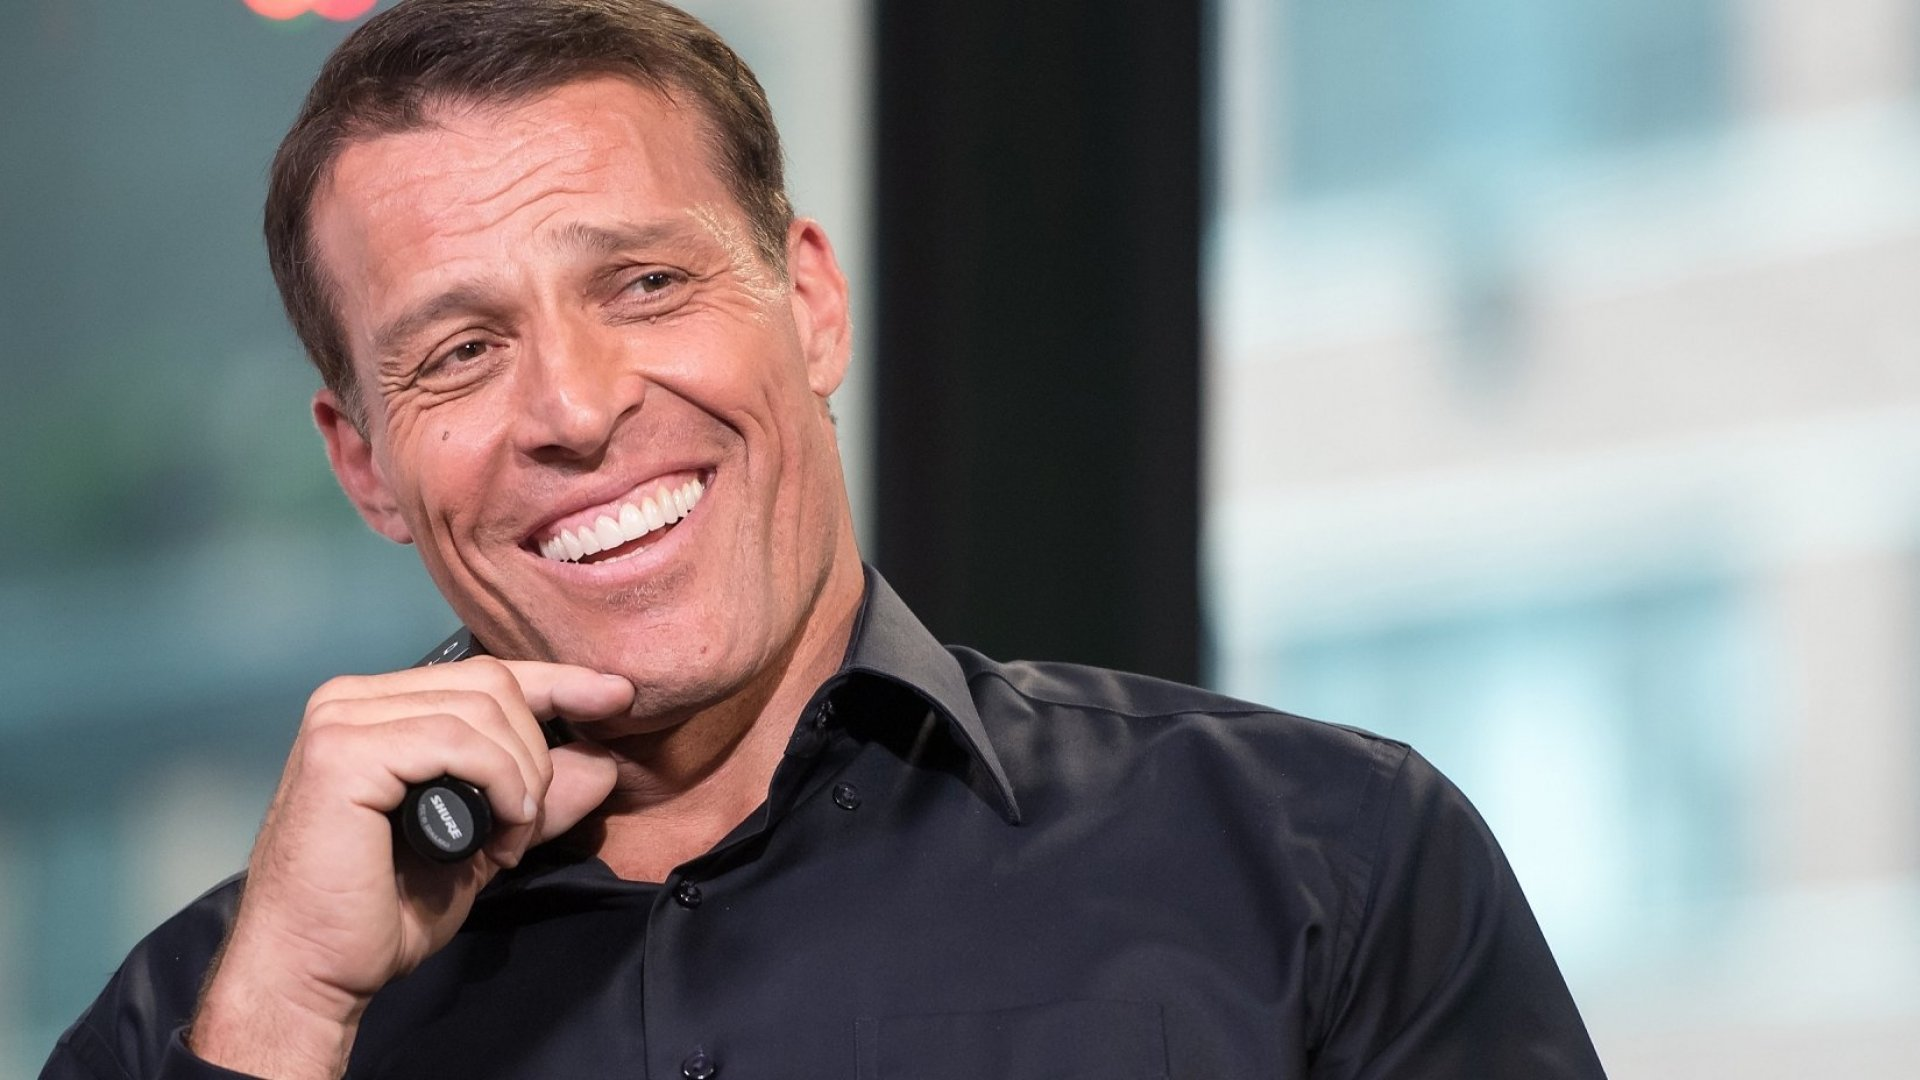 Tony Robbins on Why Too Much Passion May Doom Your Startup